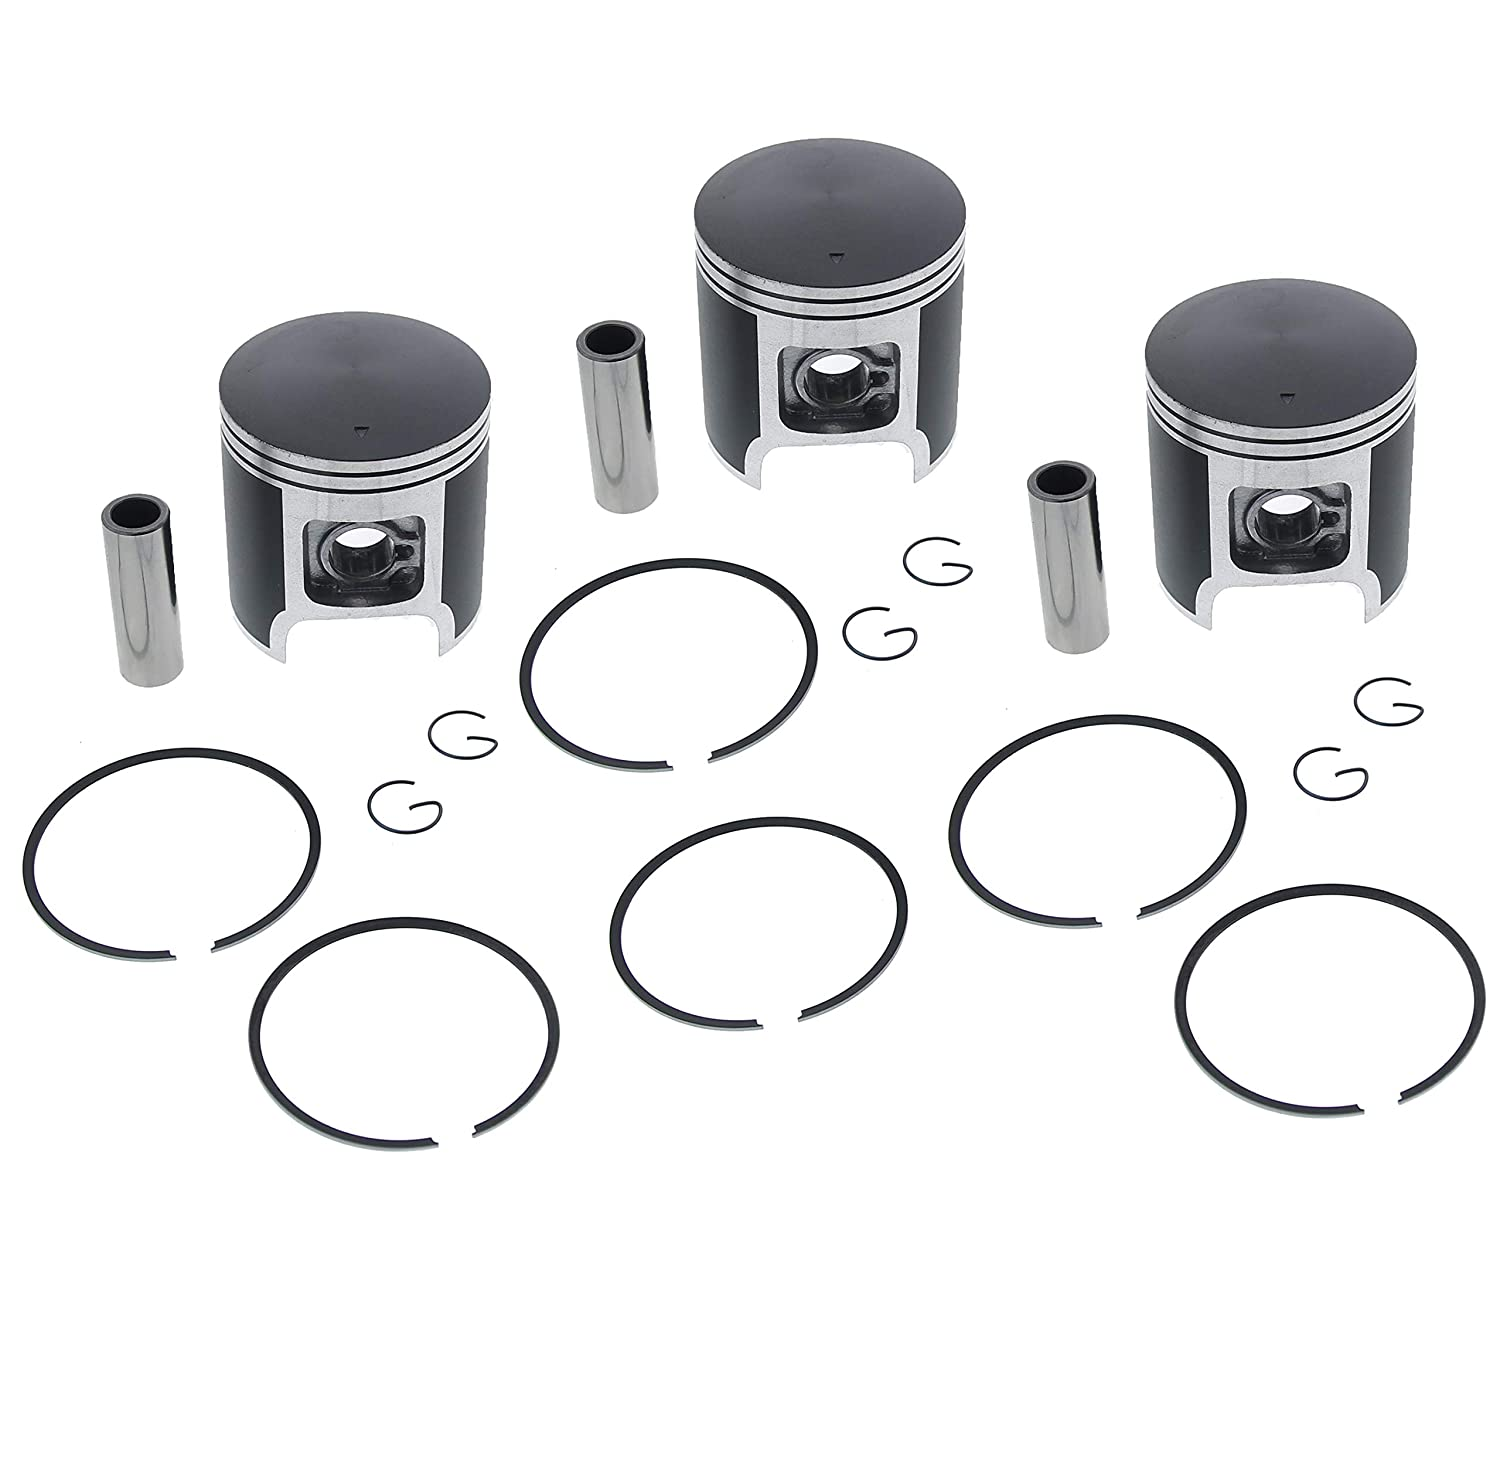 Race Driven Piston Kit x3 for Polaris Triumph 600 XC XCR XLT LTD SP RMK SKS Touring Snowmobile